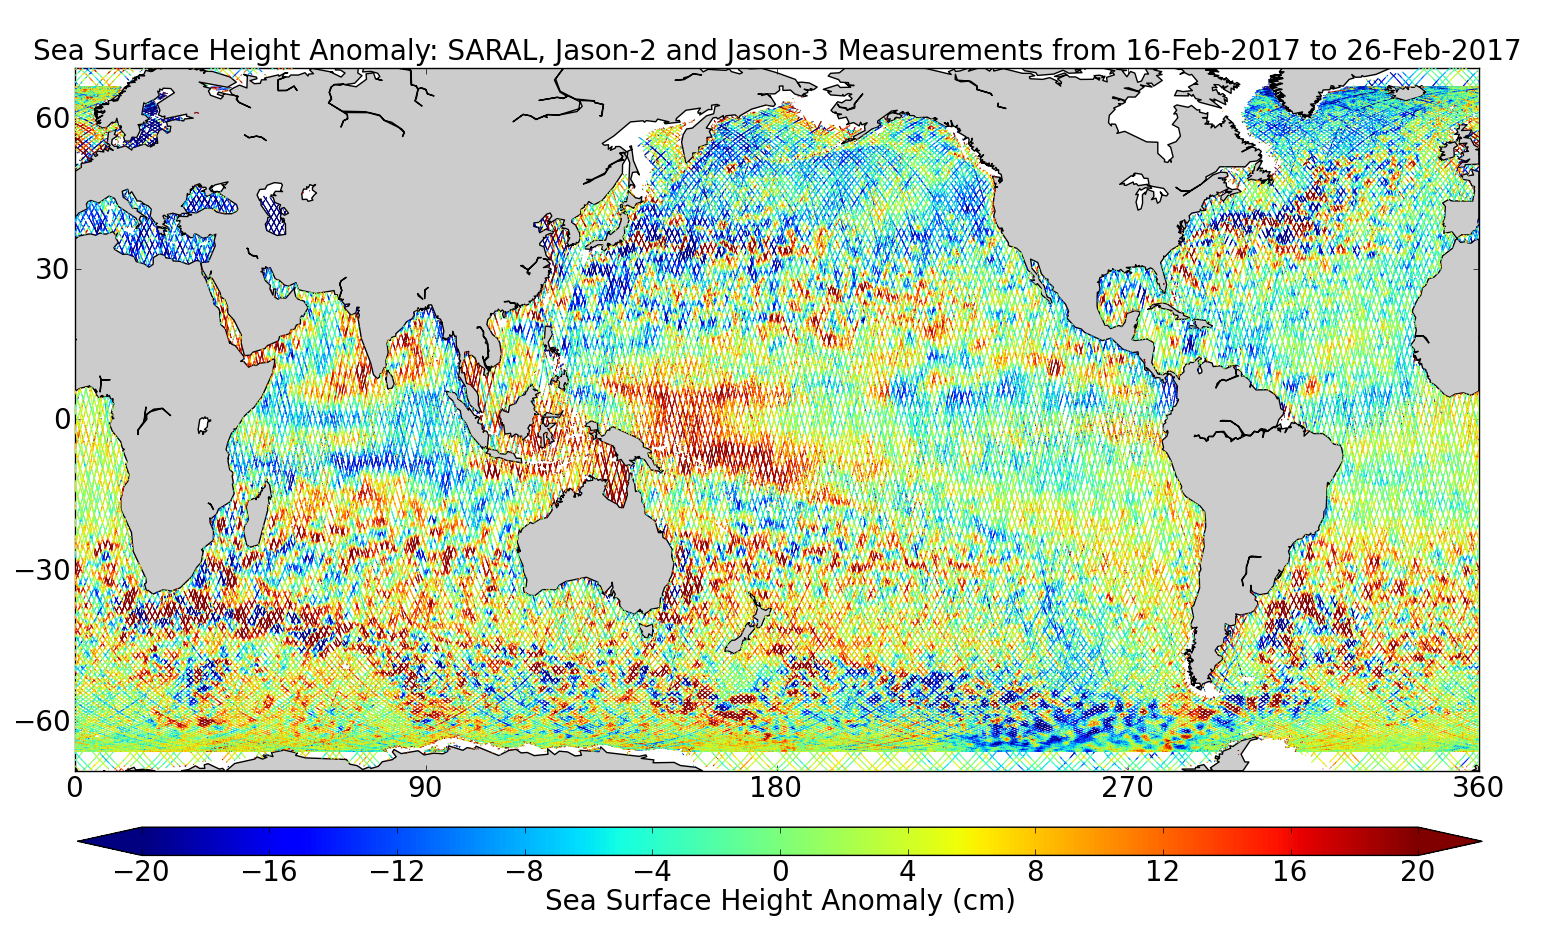 Sea Surface Height Anomaly: SARAL, Jason-2 and Jason-3 Measurements from 16-Feb-2017 to 26-Feb-2017